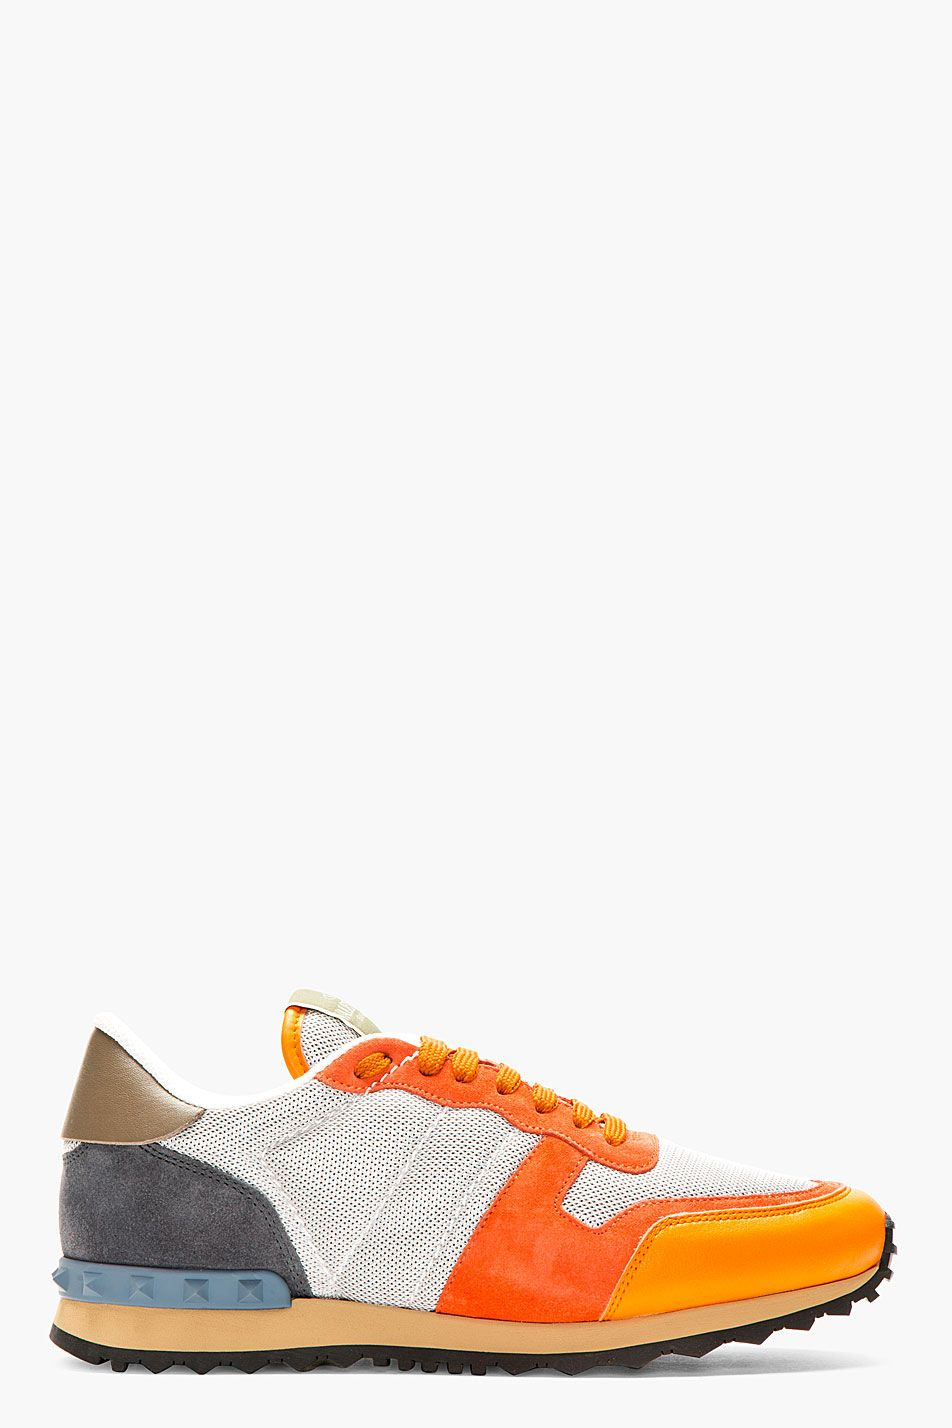 6ed94f13181db VALENTINO Orange   Grey Studded Sneakers New Nike Shoes